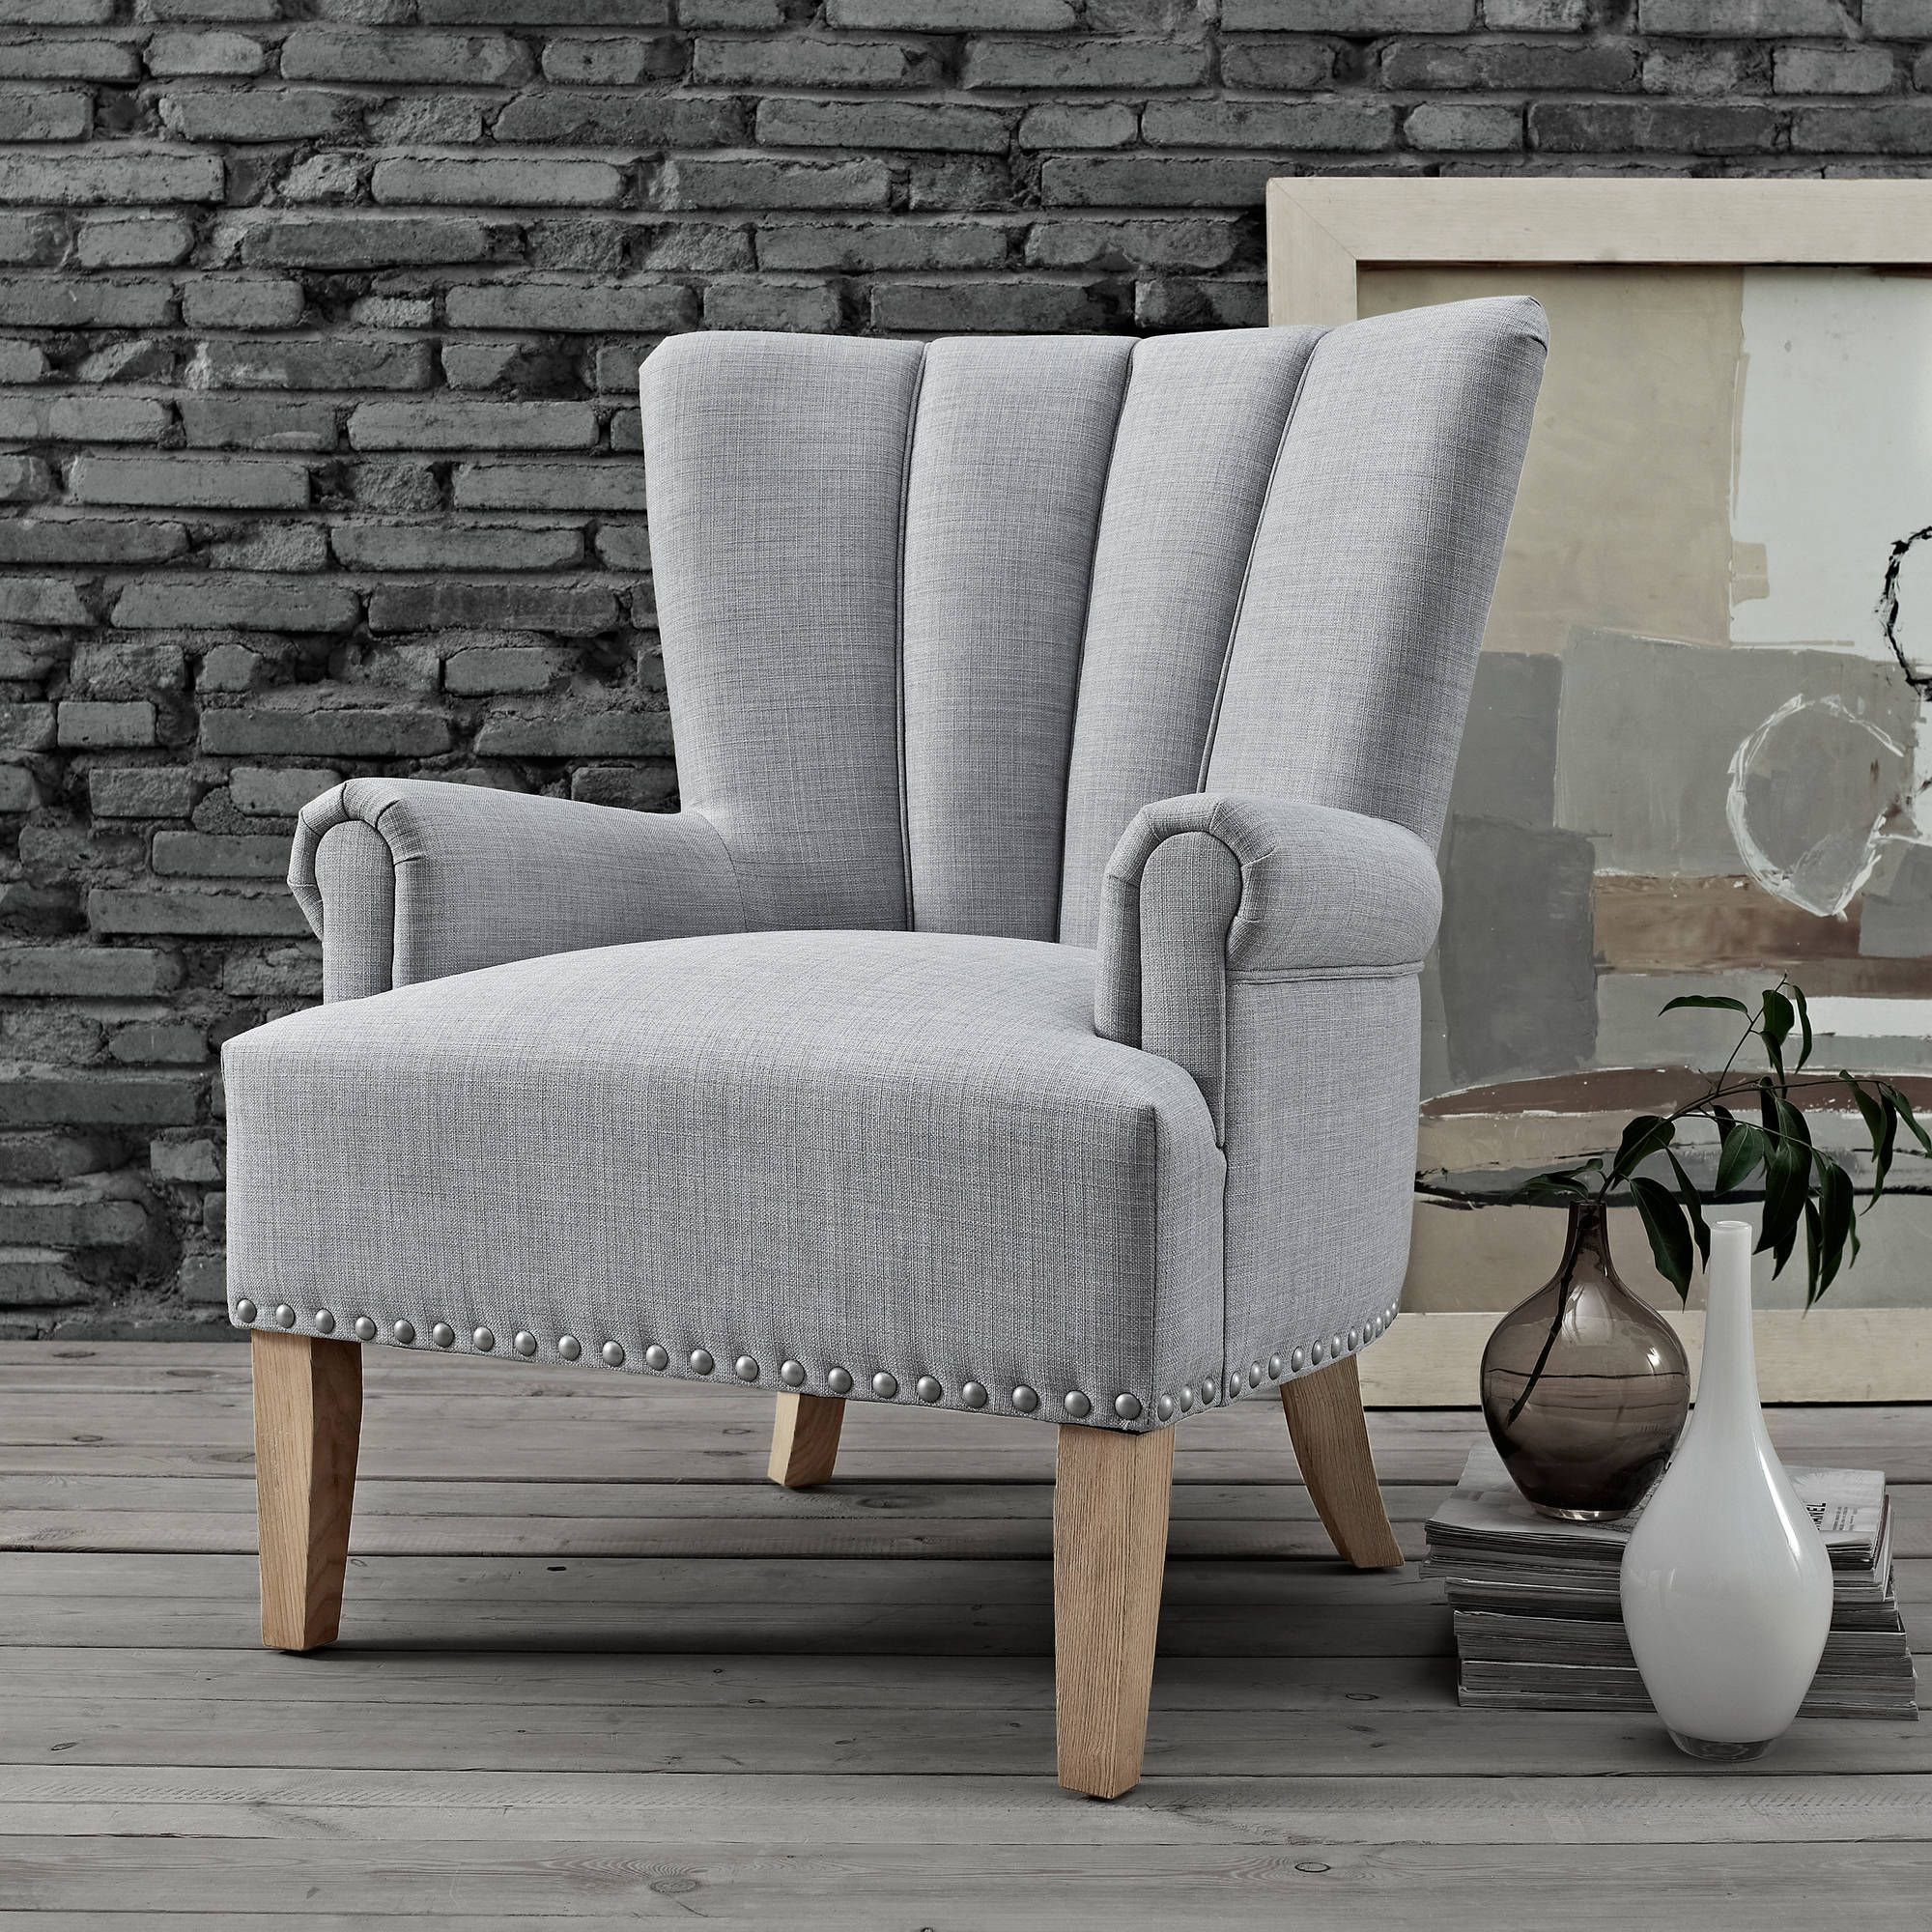 16086303c082d53ca8bcdd1f1babb535 - Better Homes And Gardens Rolled Arm Accent Chair Gray